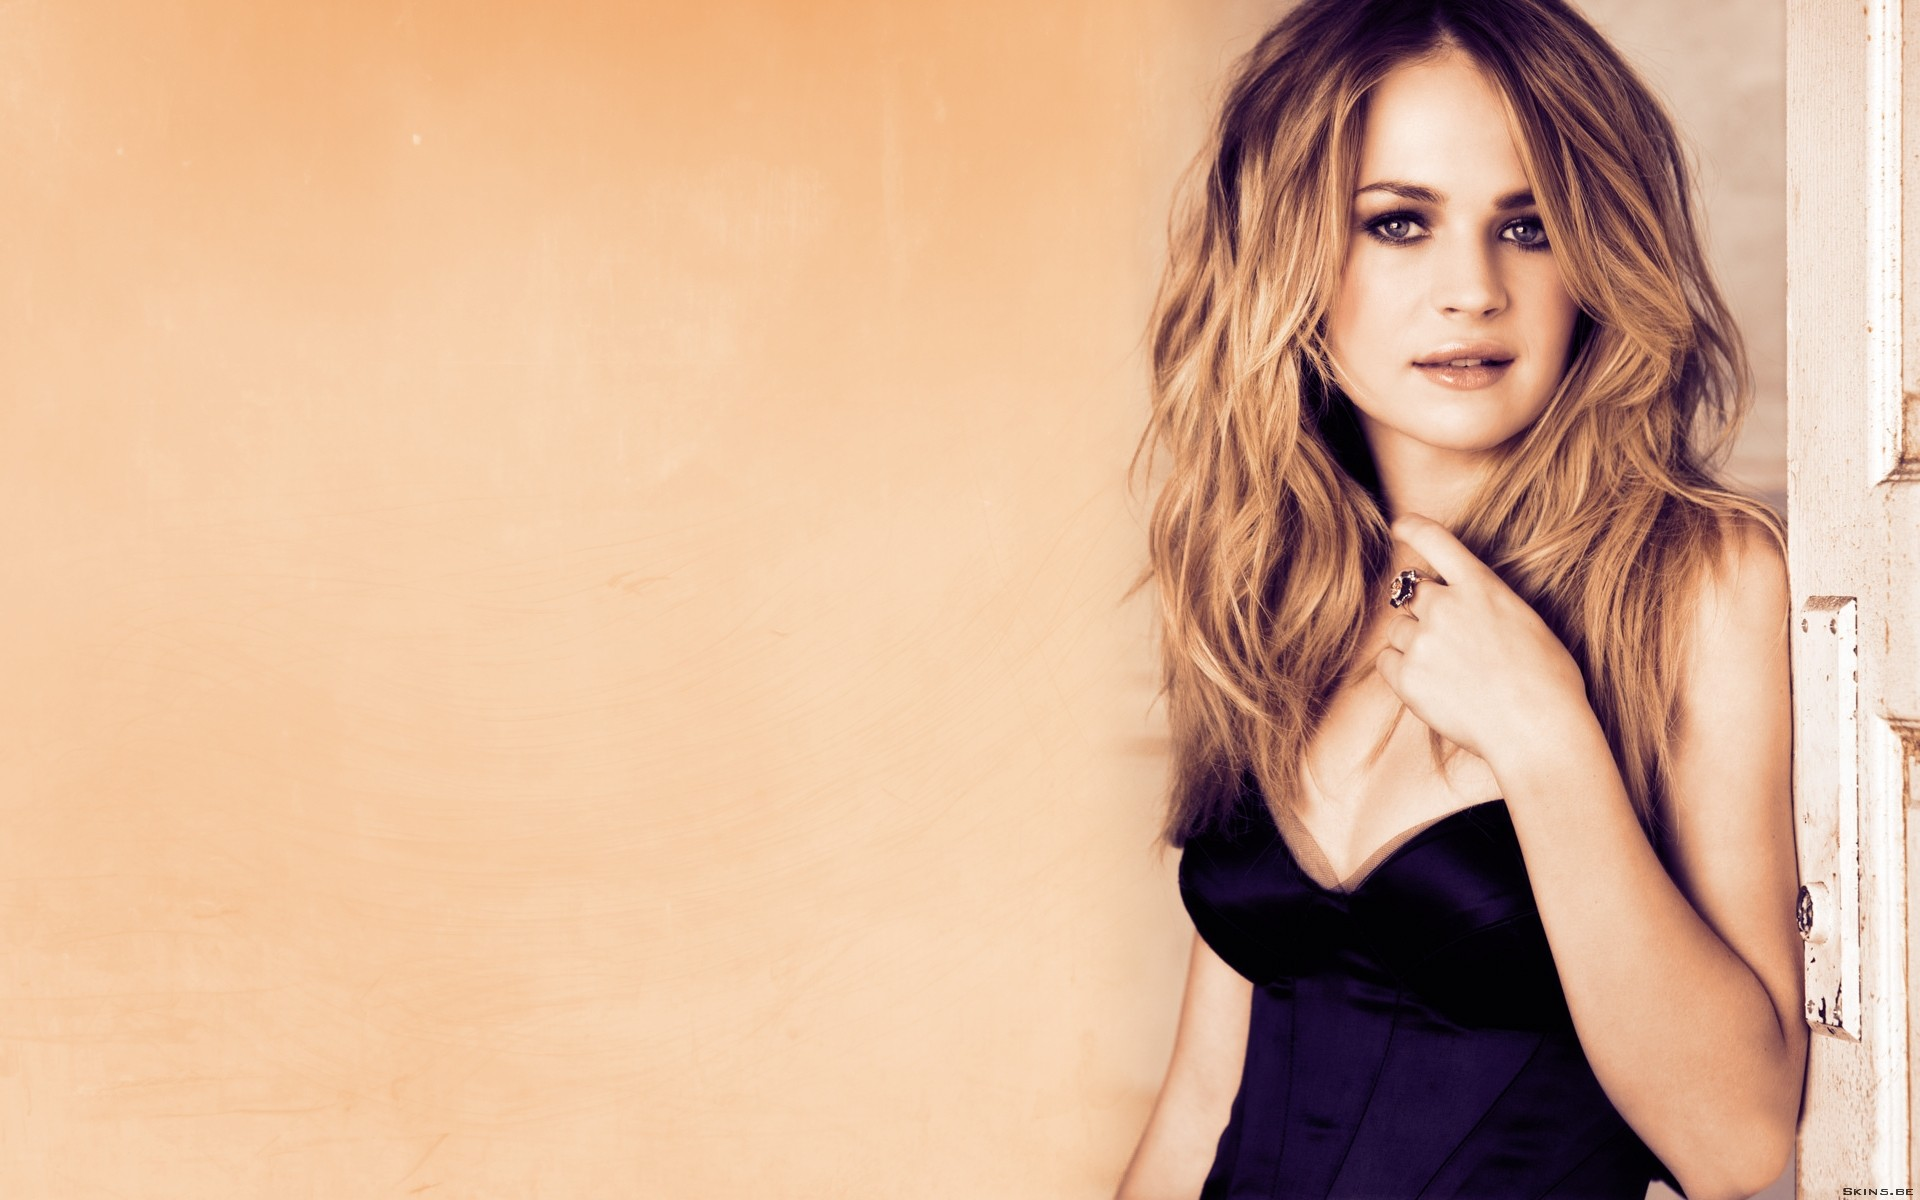 britt robertson hd wallpapers for desktop download